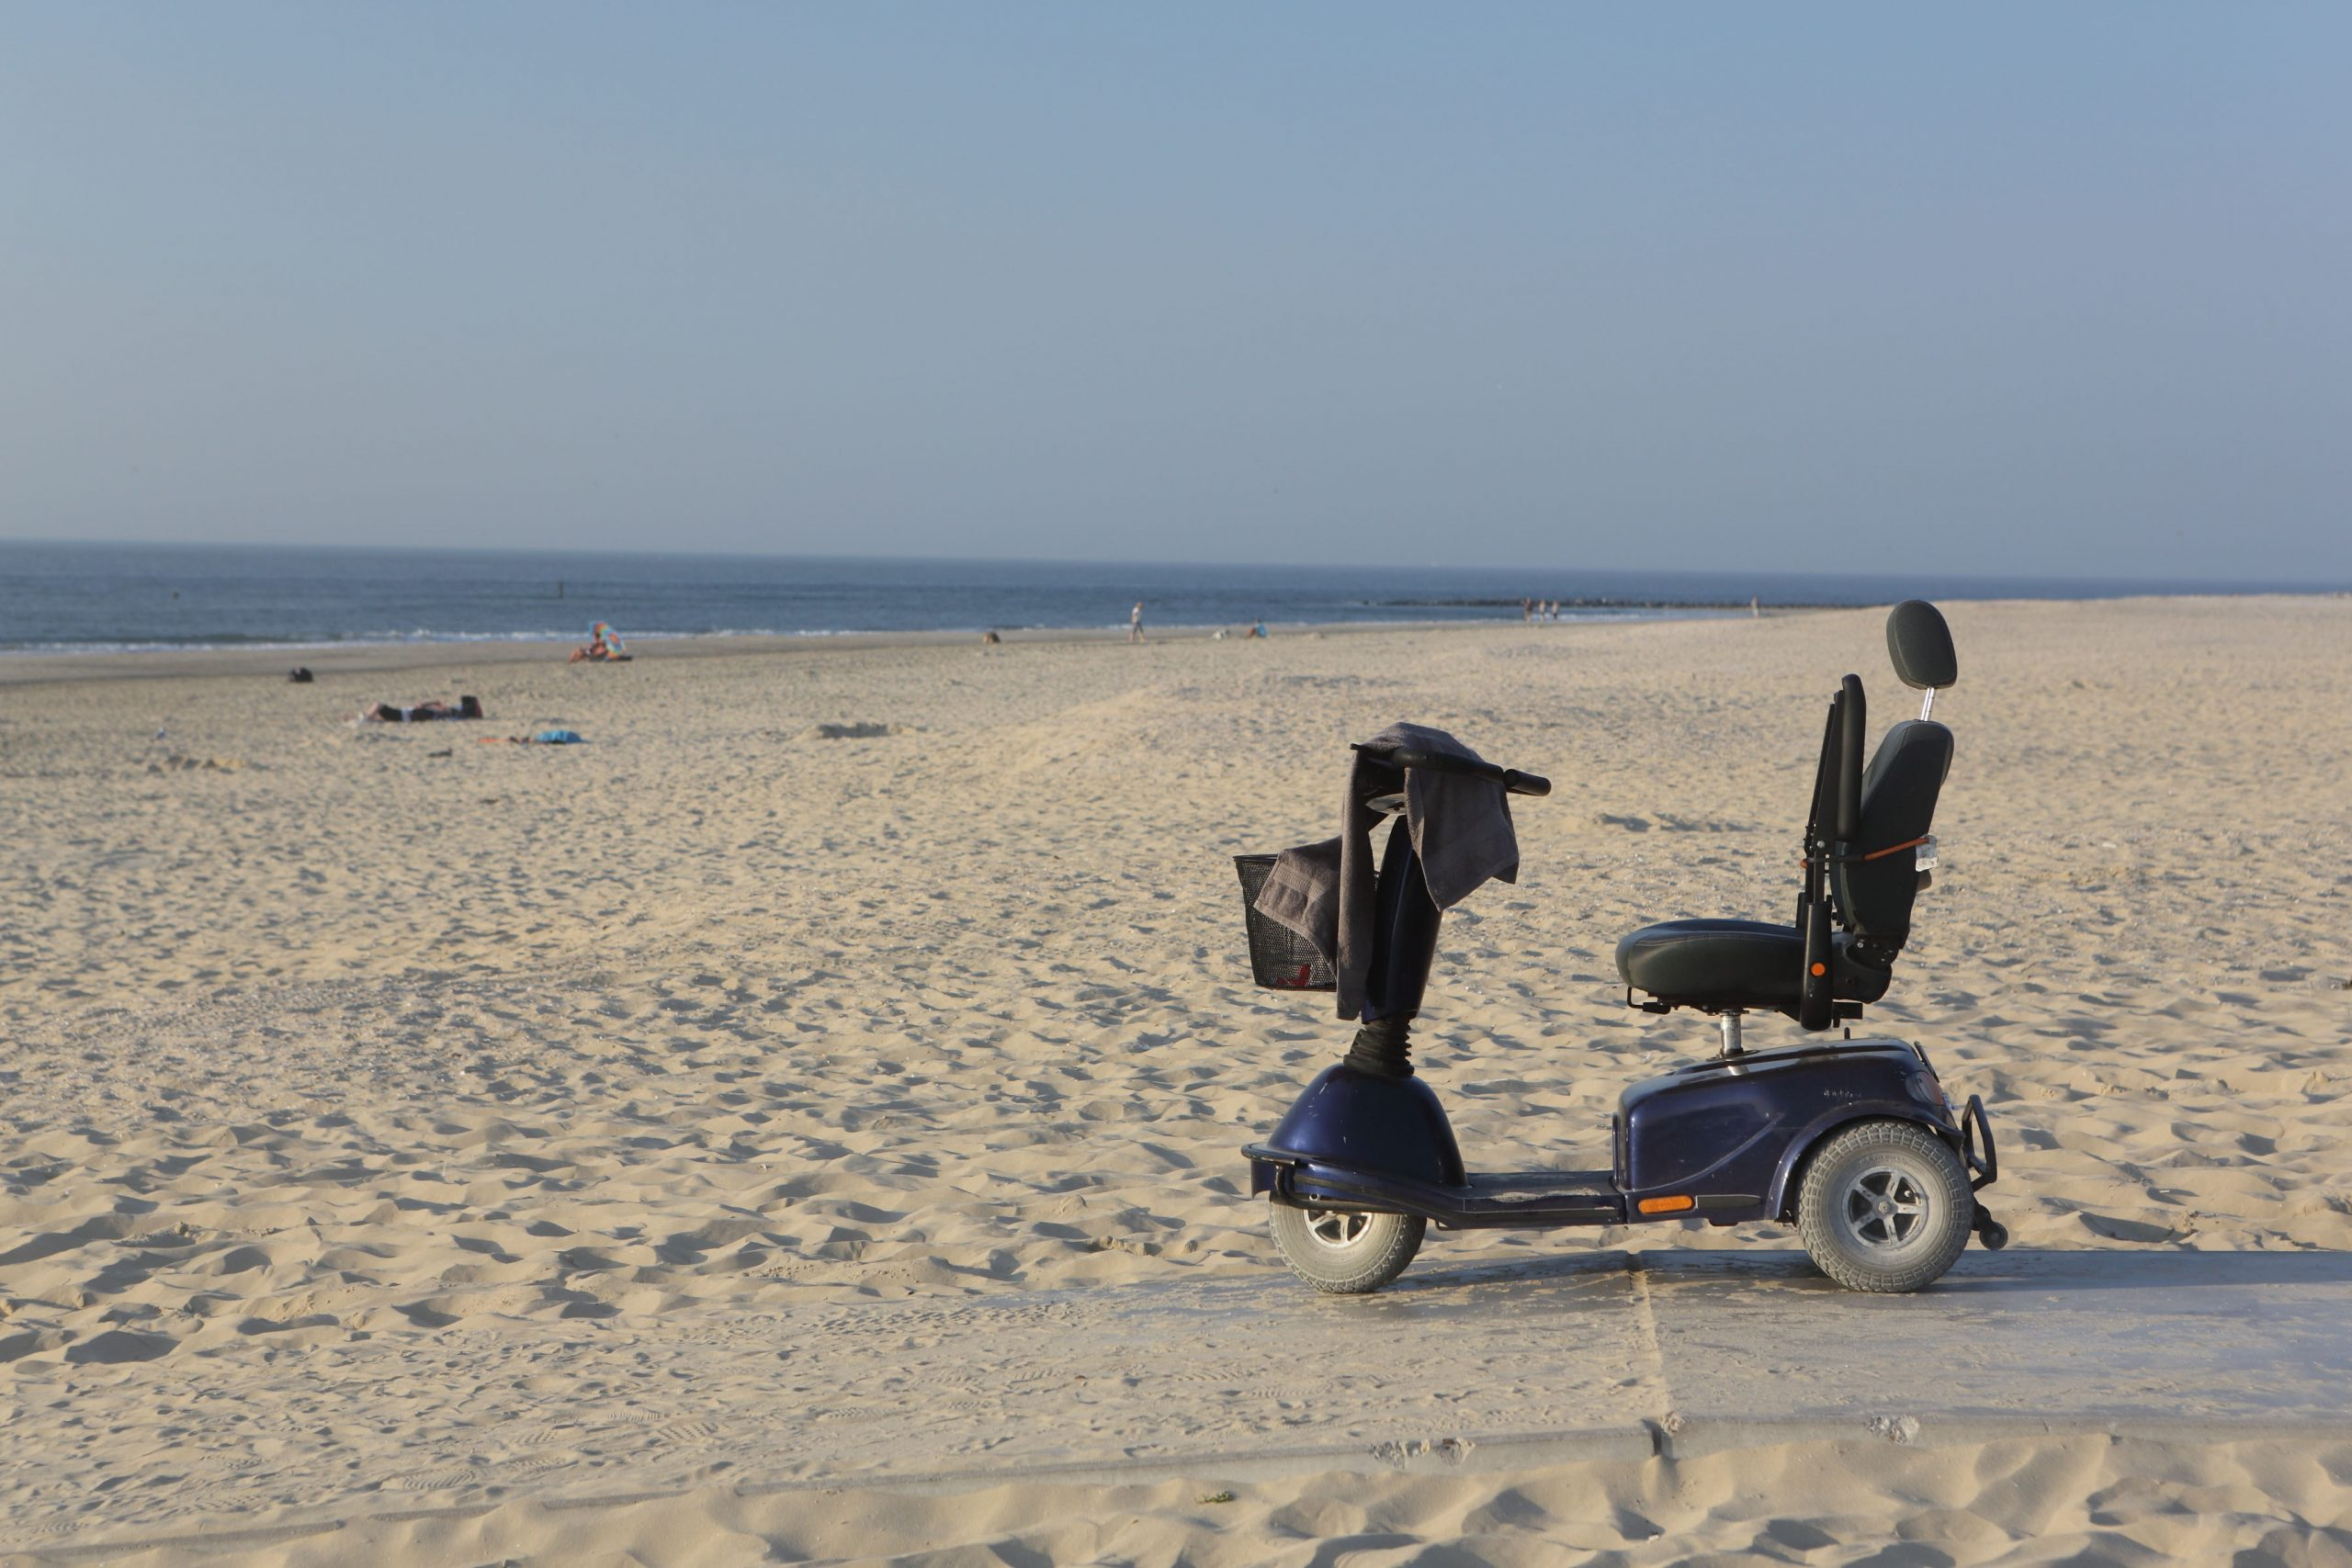 Mobility Scooter on the beach.